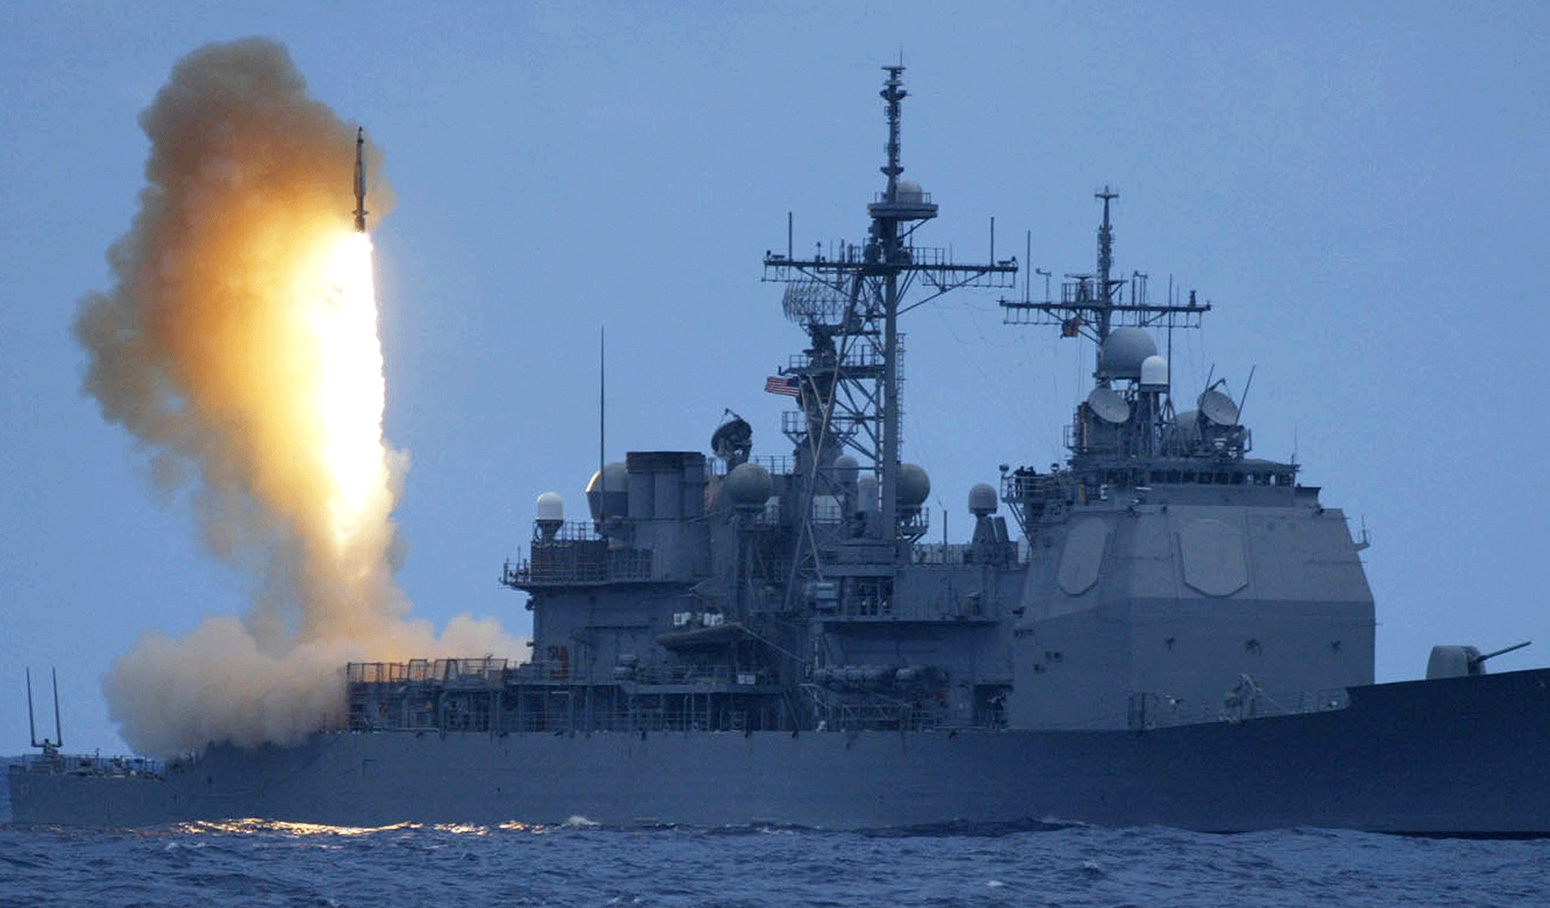 MITRE creates naval missile defense systems